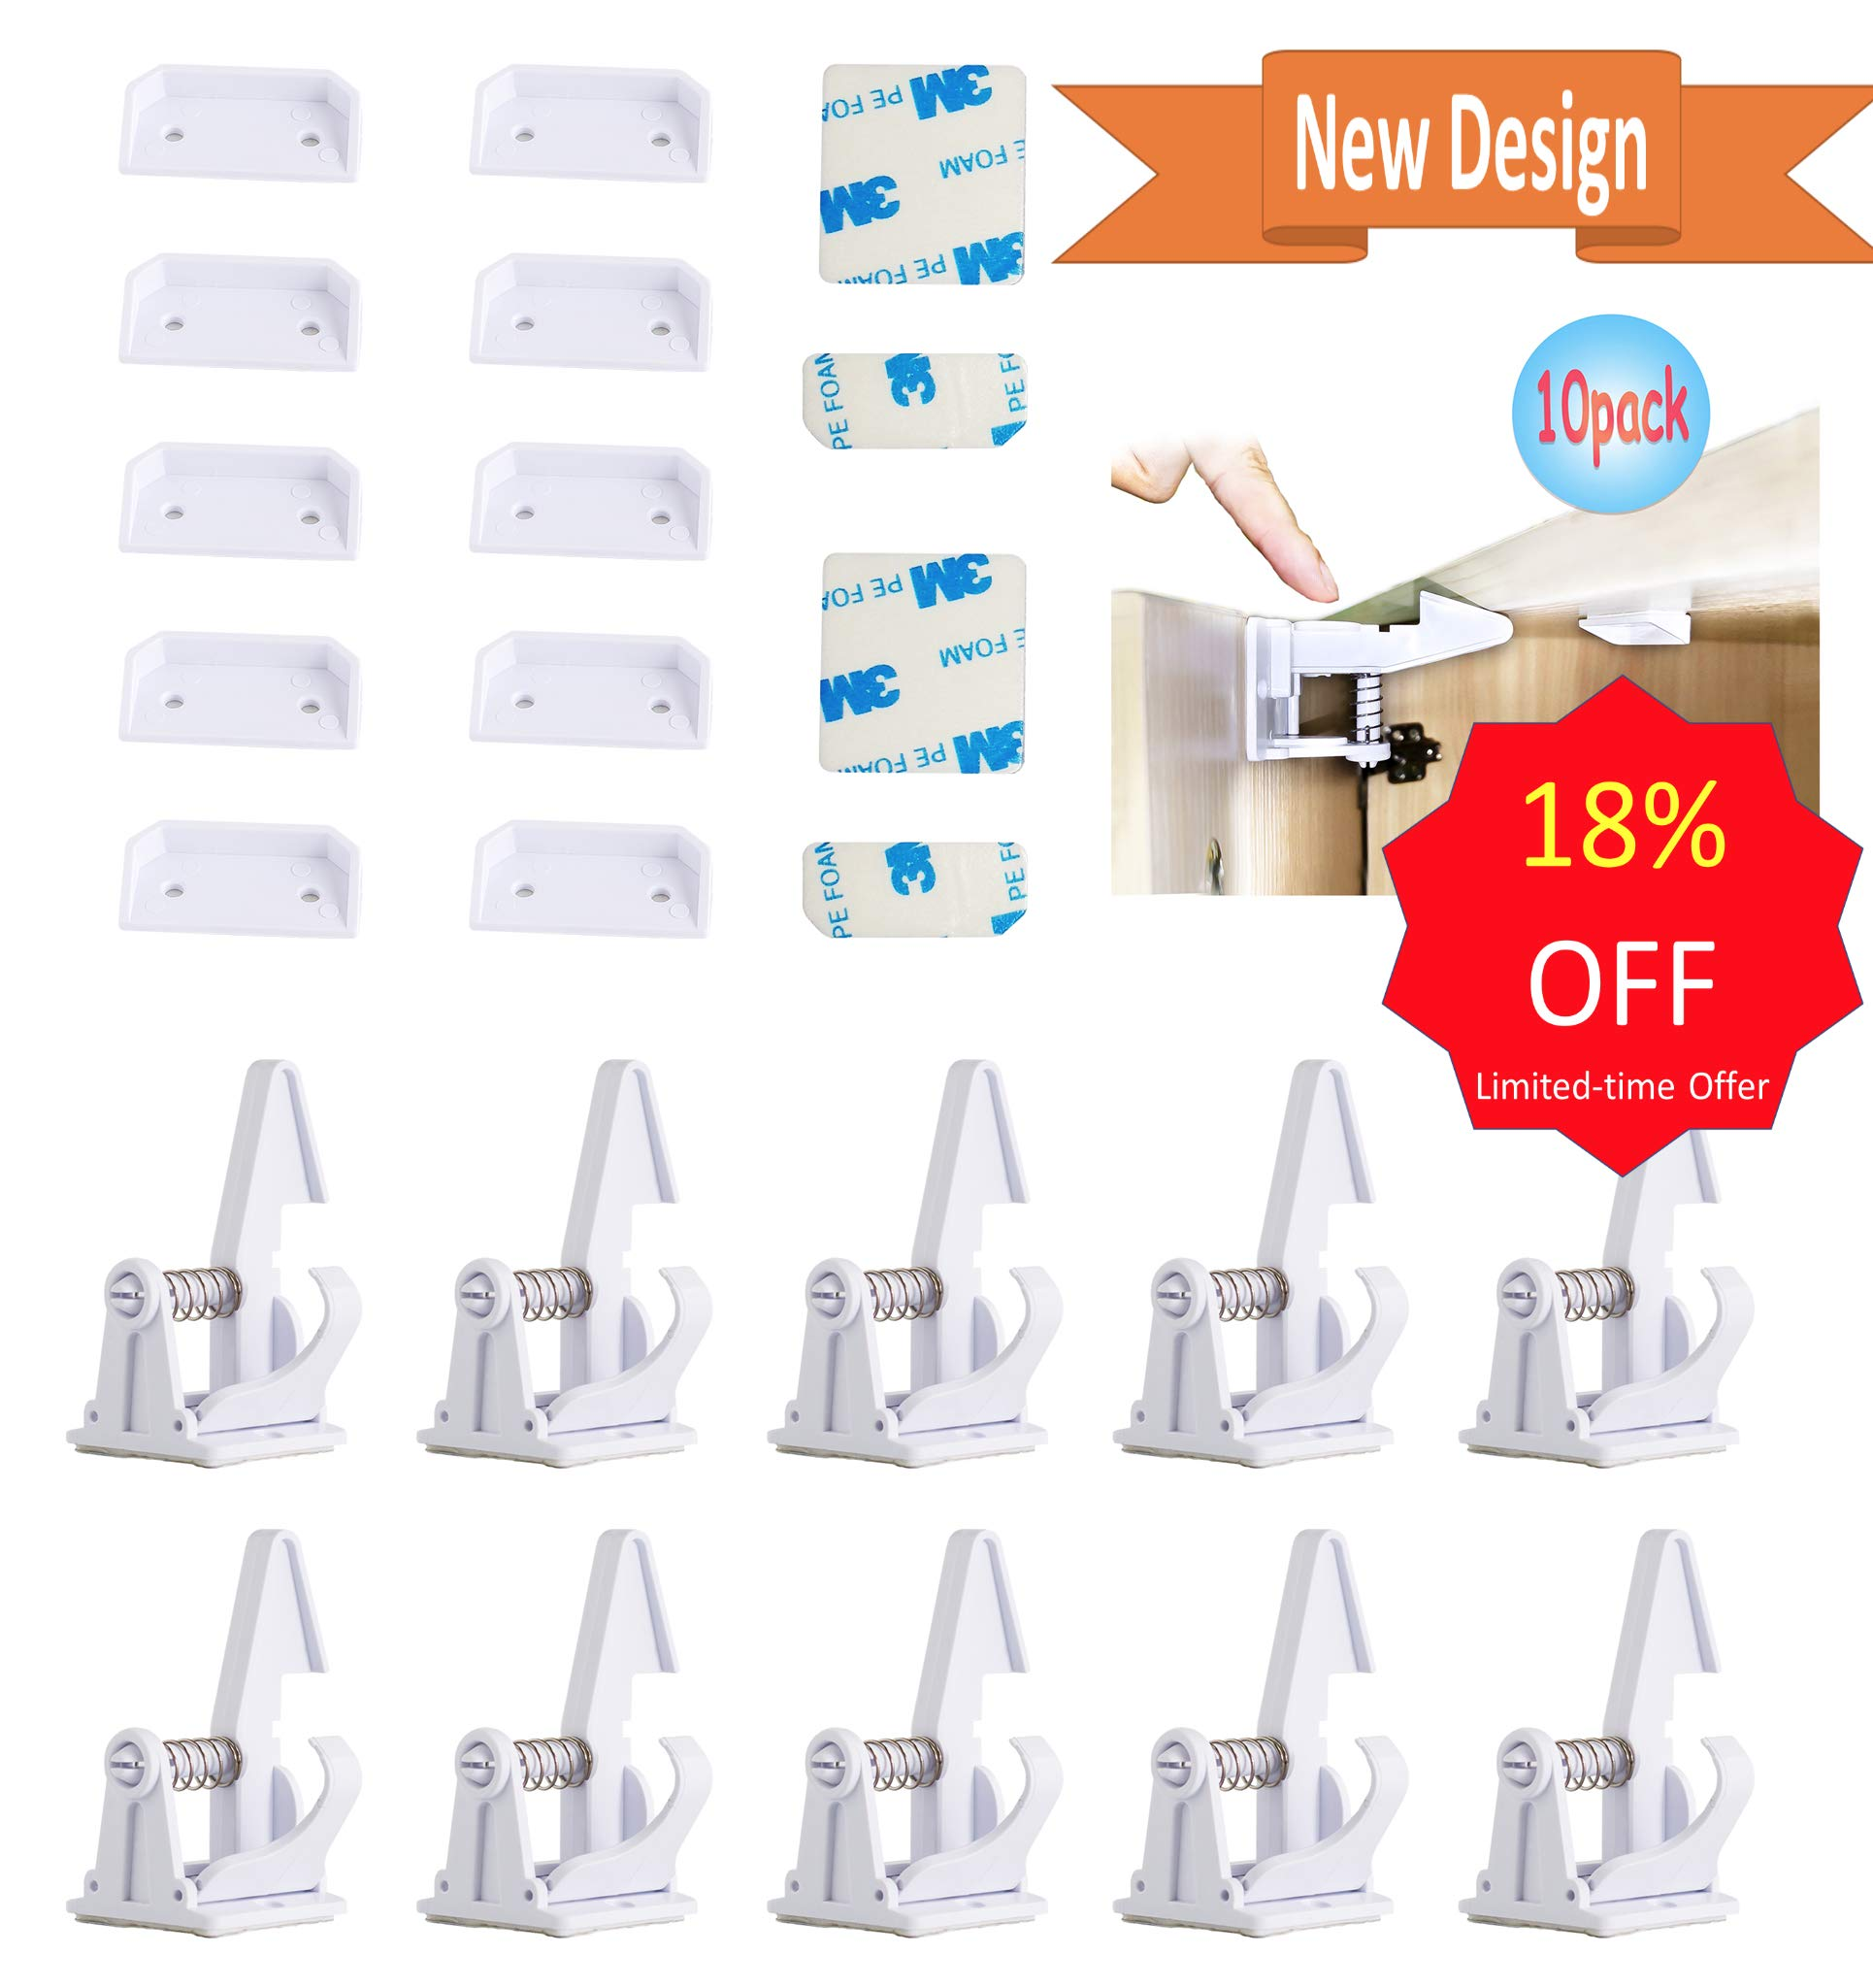 Baby Proofing Cabinet Locks Child Safety Latches Invisible Design 3M Adhesive No Tooling, Drilling: 10 Pack White Drawer Lock for Baby Safety with an Anti-lock, 2 more Sets of 3M Adhesive by Chakrabit